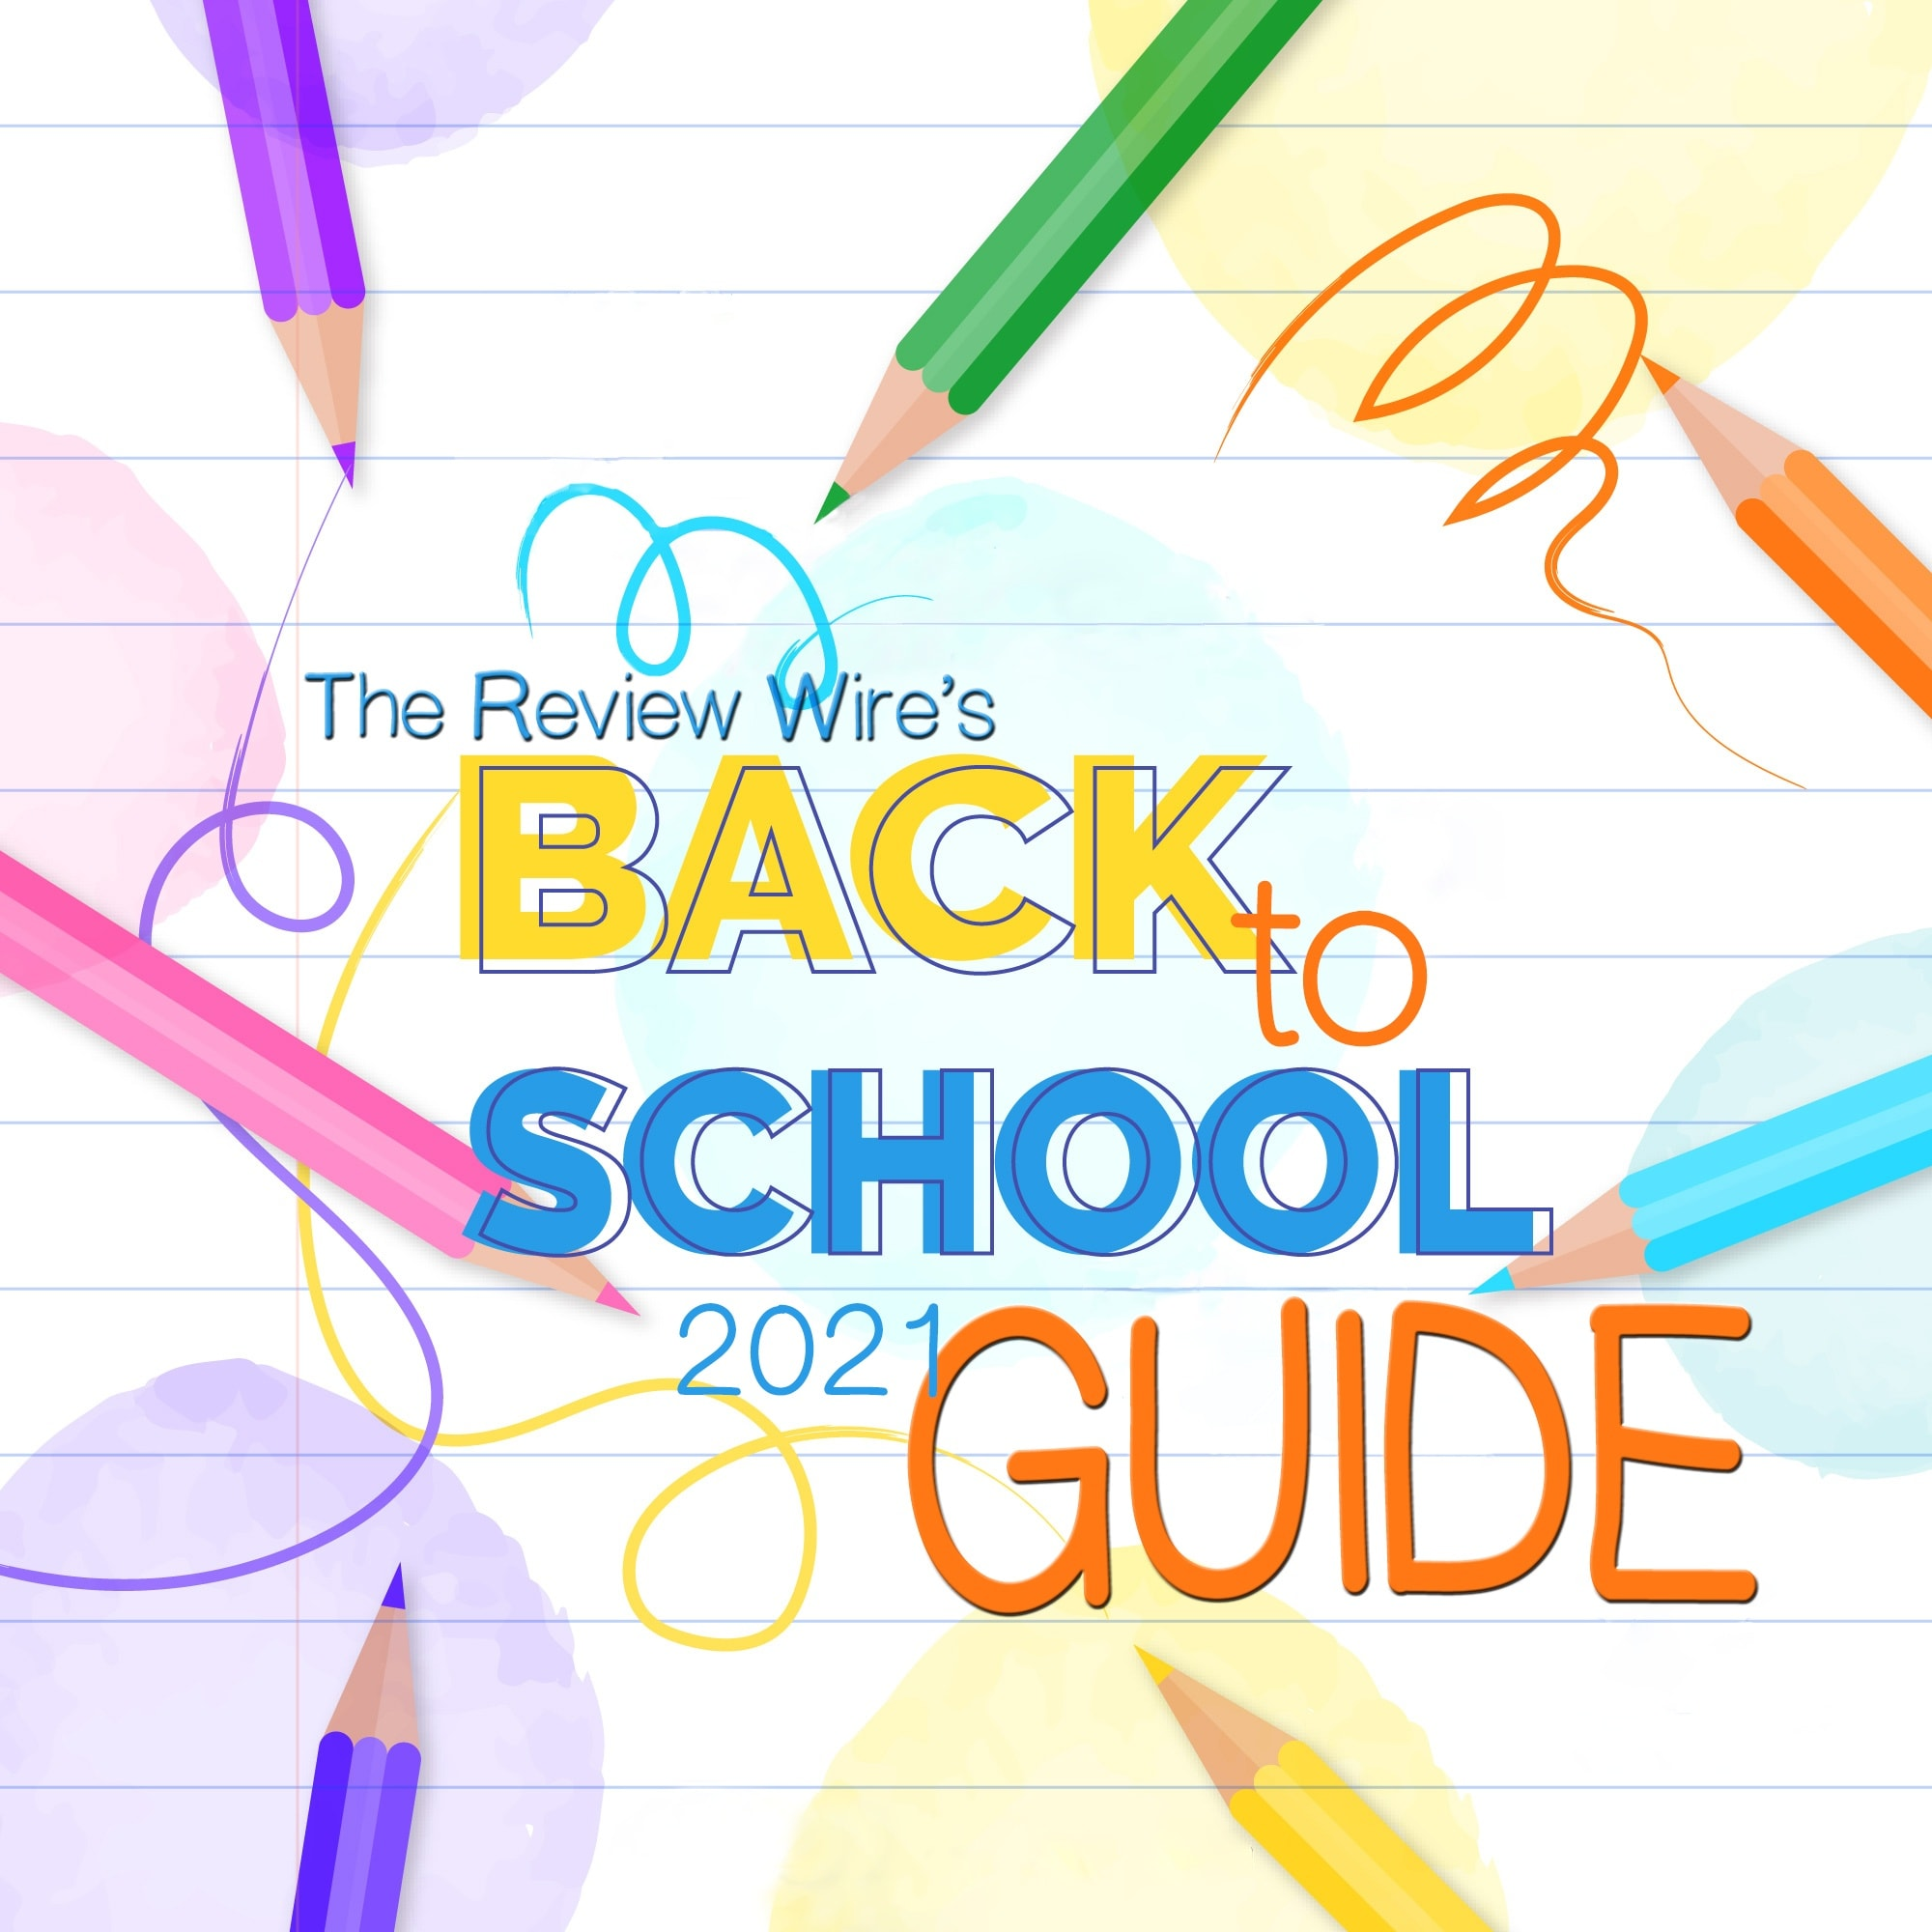 The Review Wire Back-to-School Guide 2021